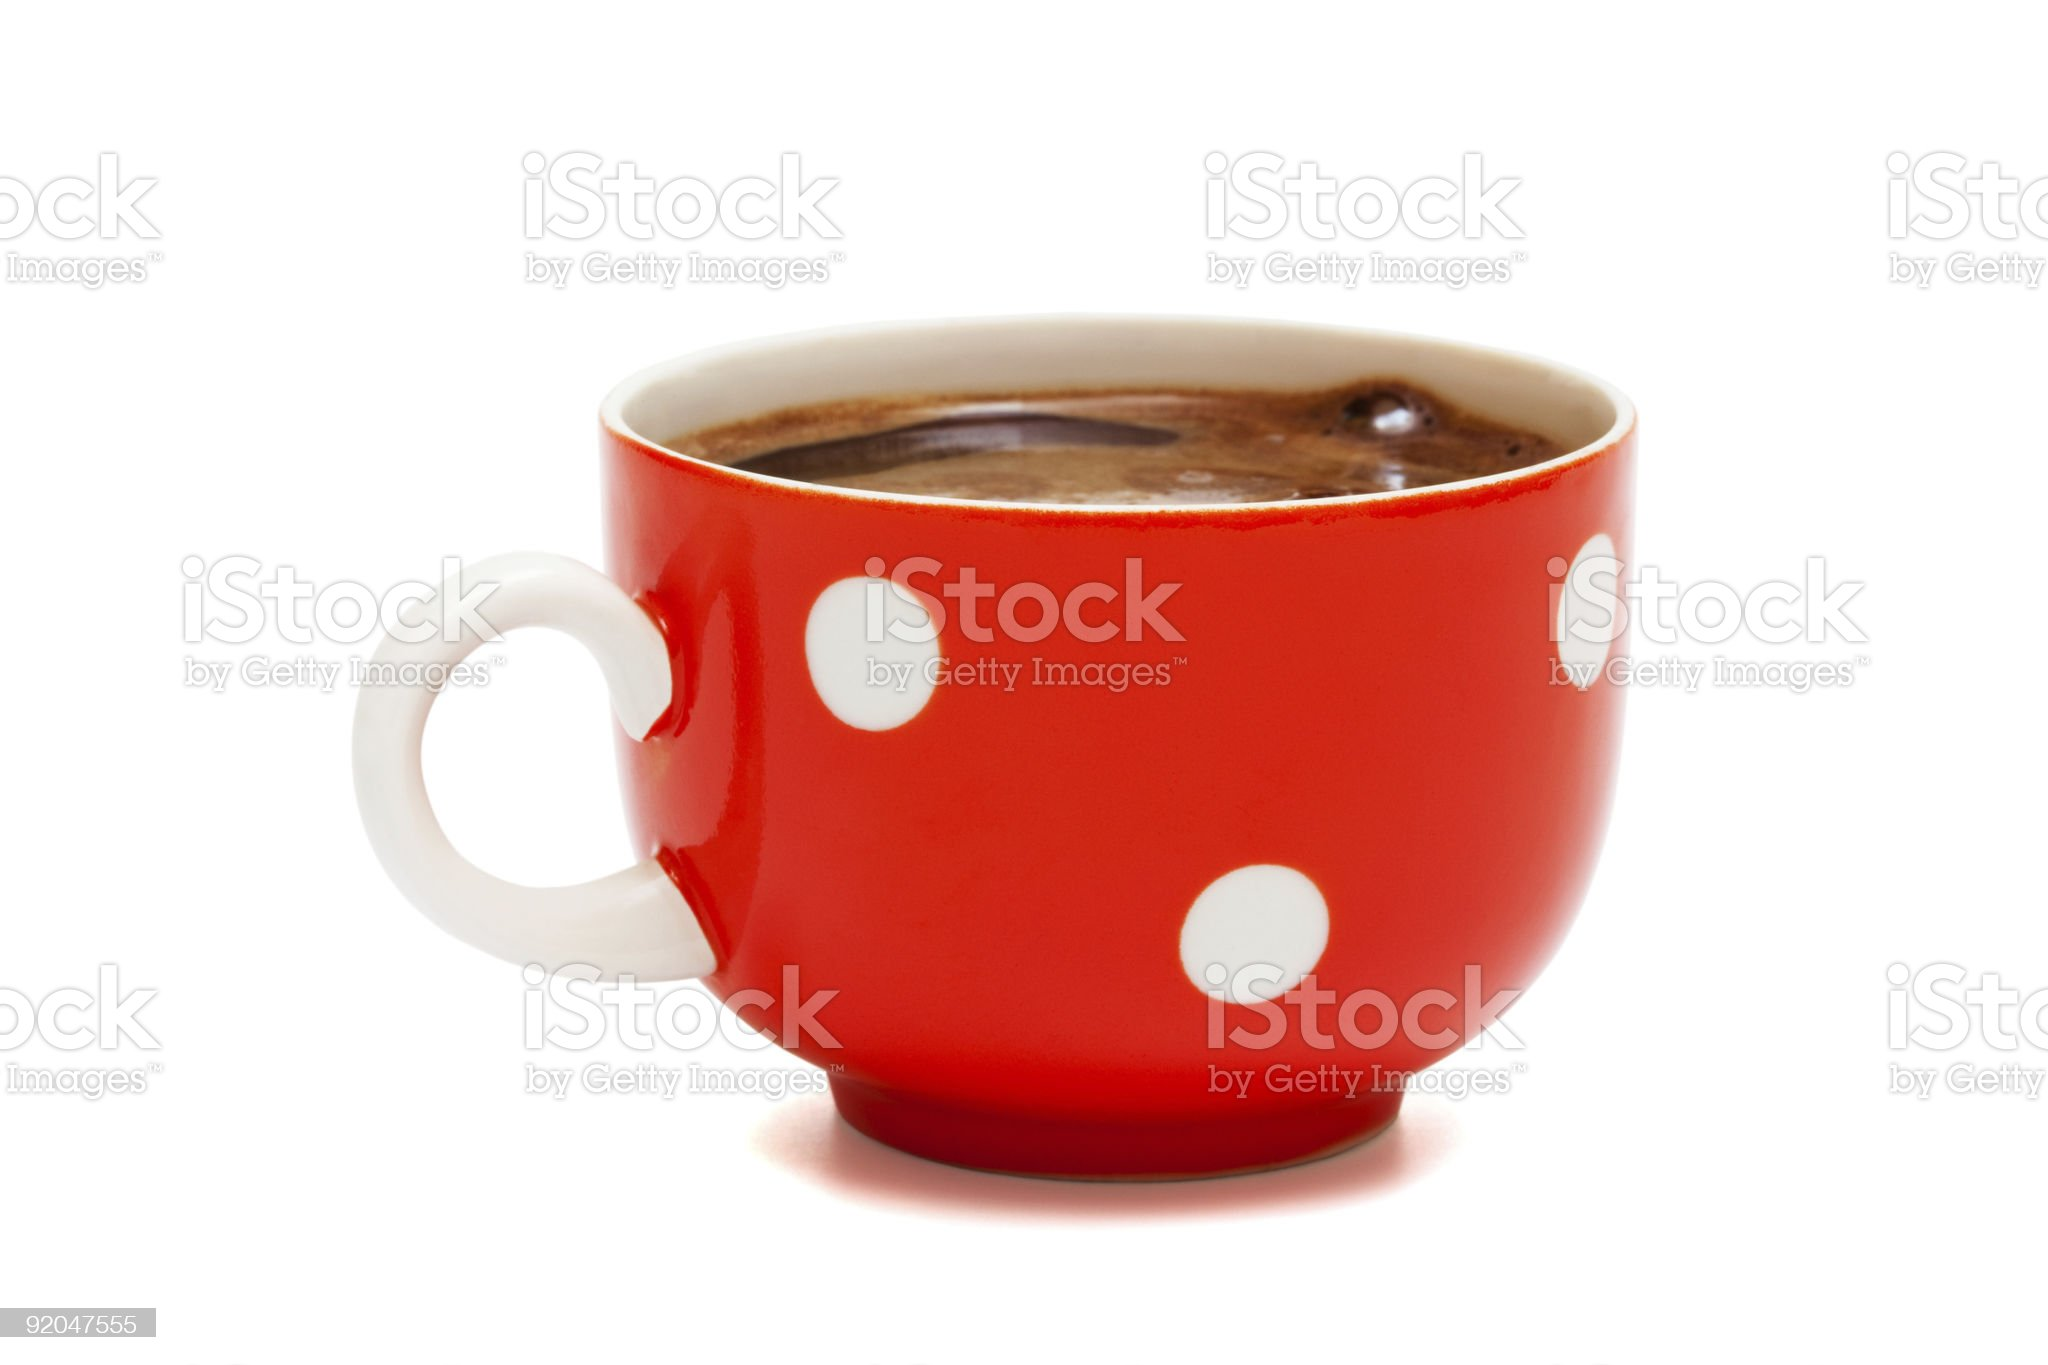 red mug from coffee royalty-free stock photo